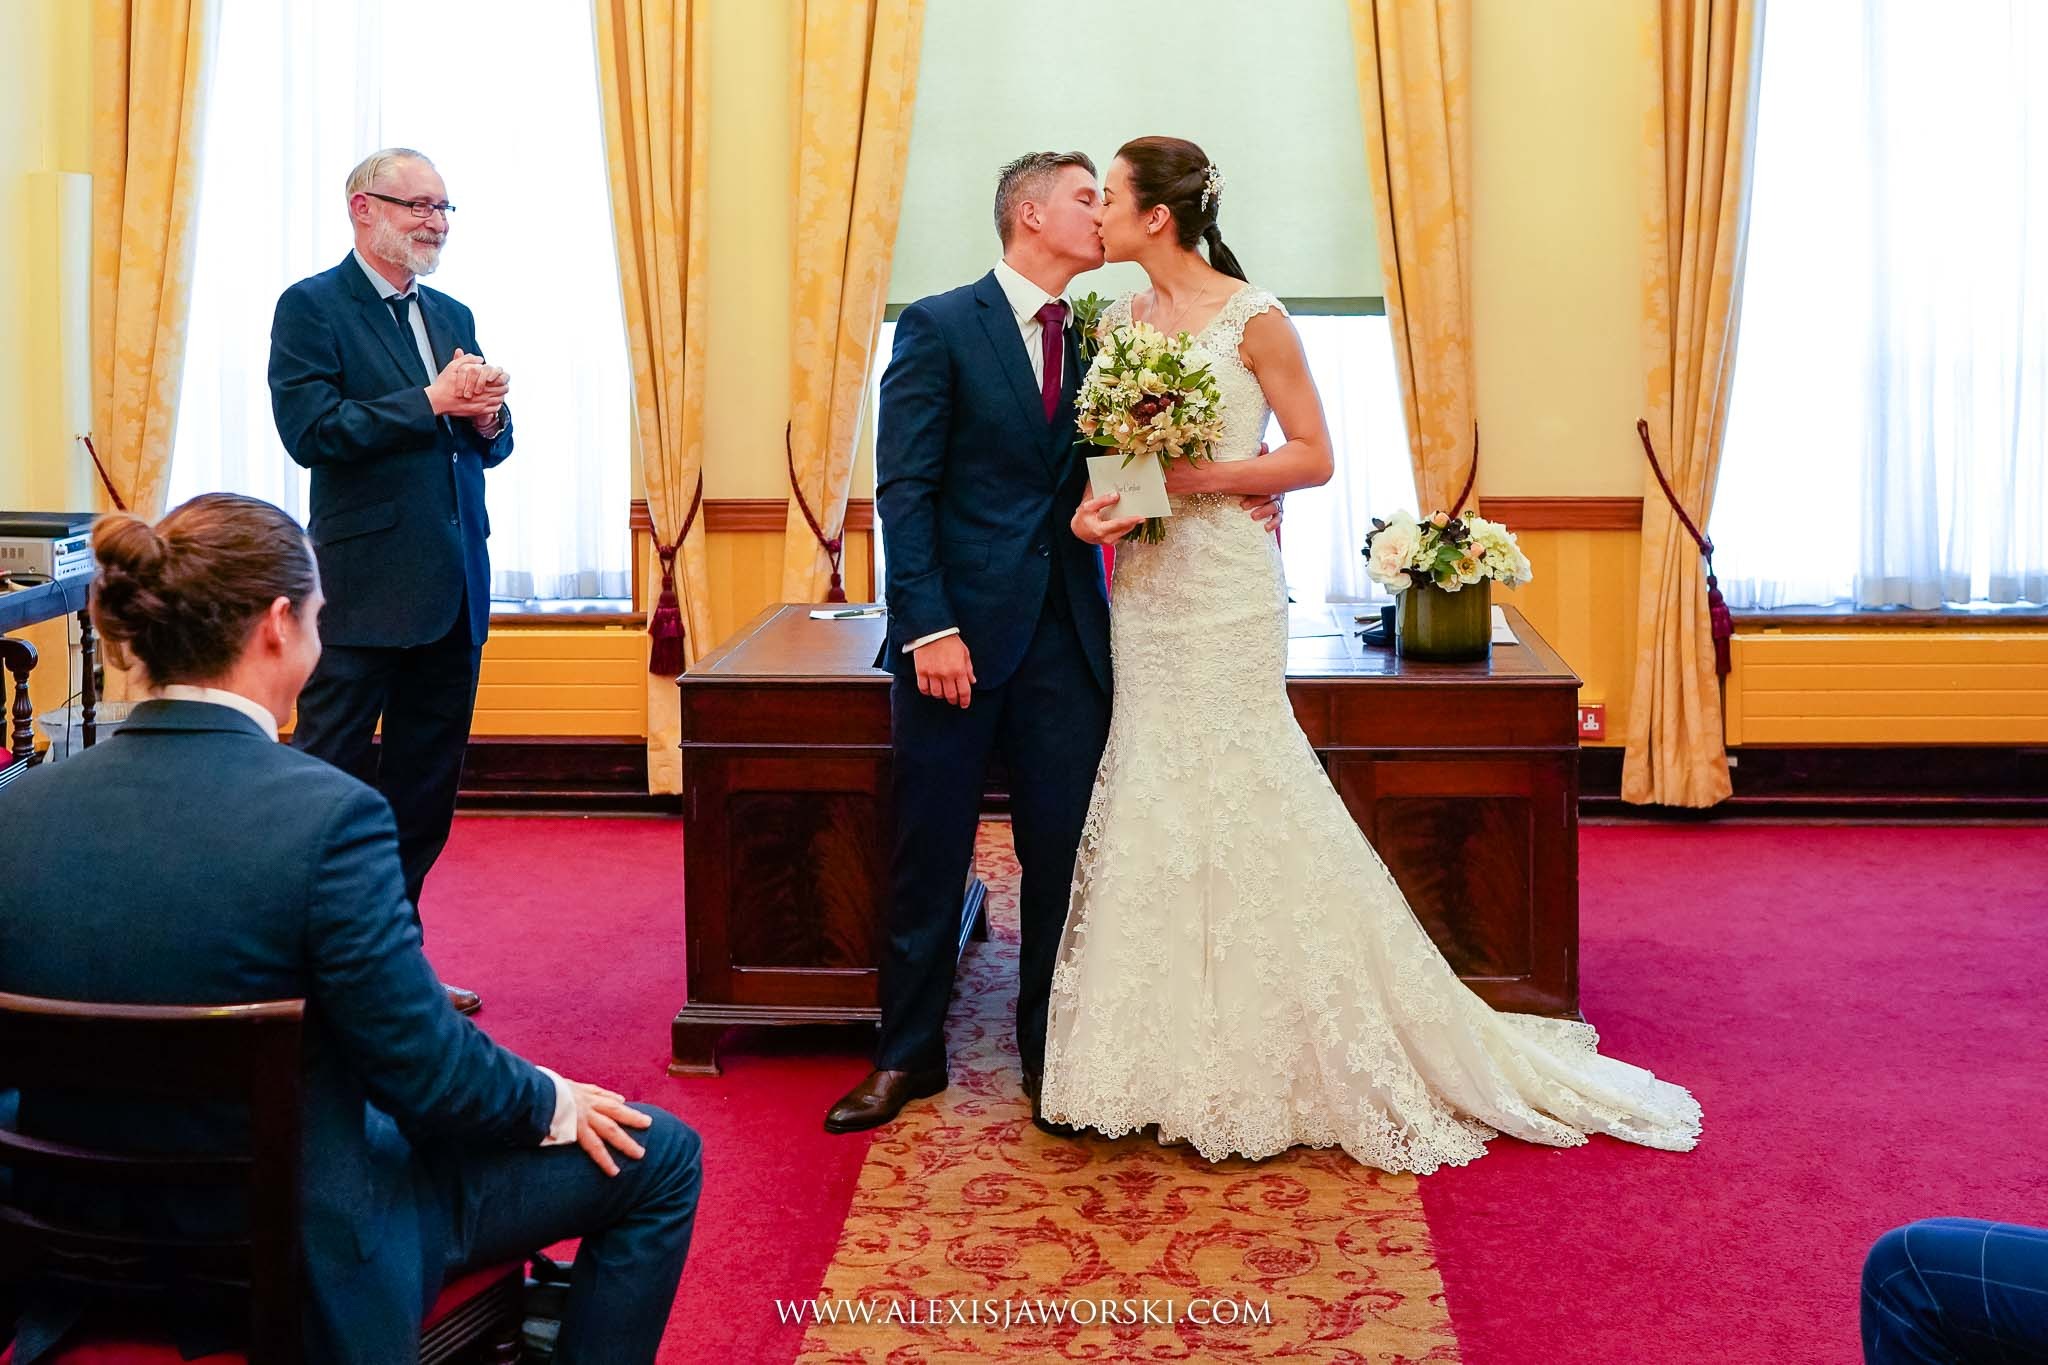 A kiss before leaving the ceremony